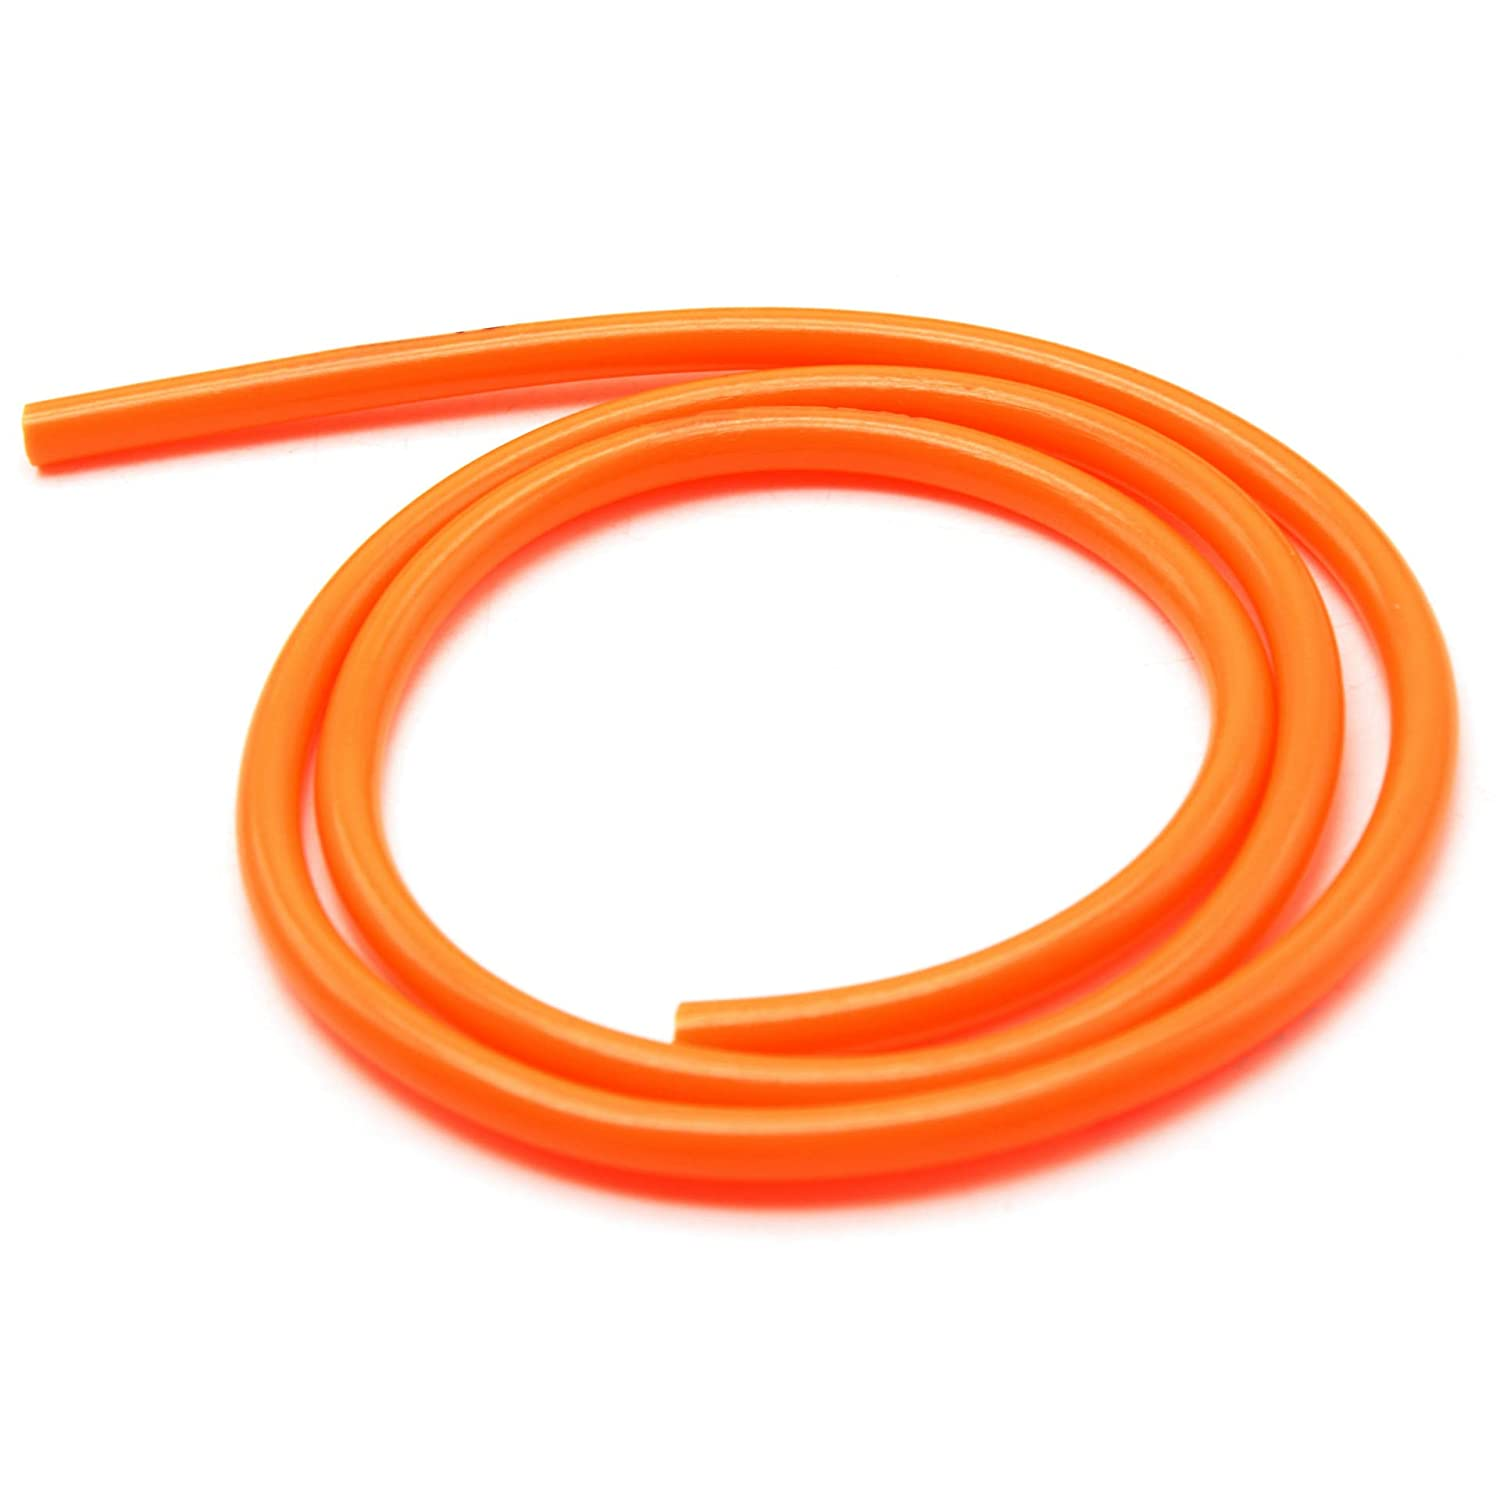 WSERE 2 Pack 1M Motorcycle Bike Fuel Gas Oil Delivery Tube Hose Pipe 5mm ID 8mm OD White